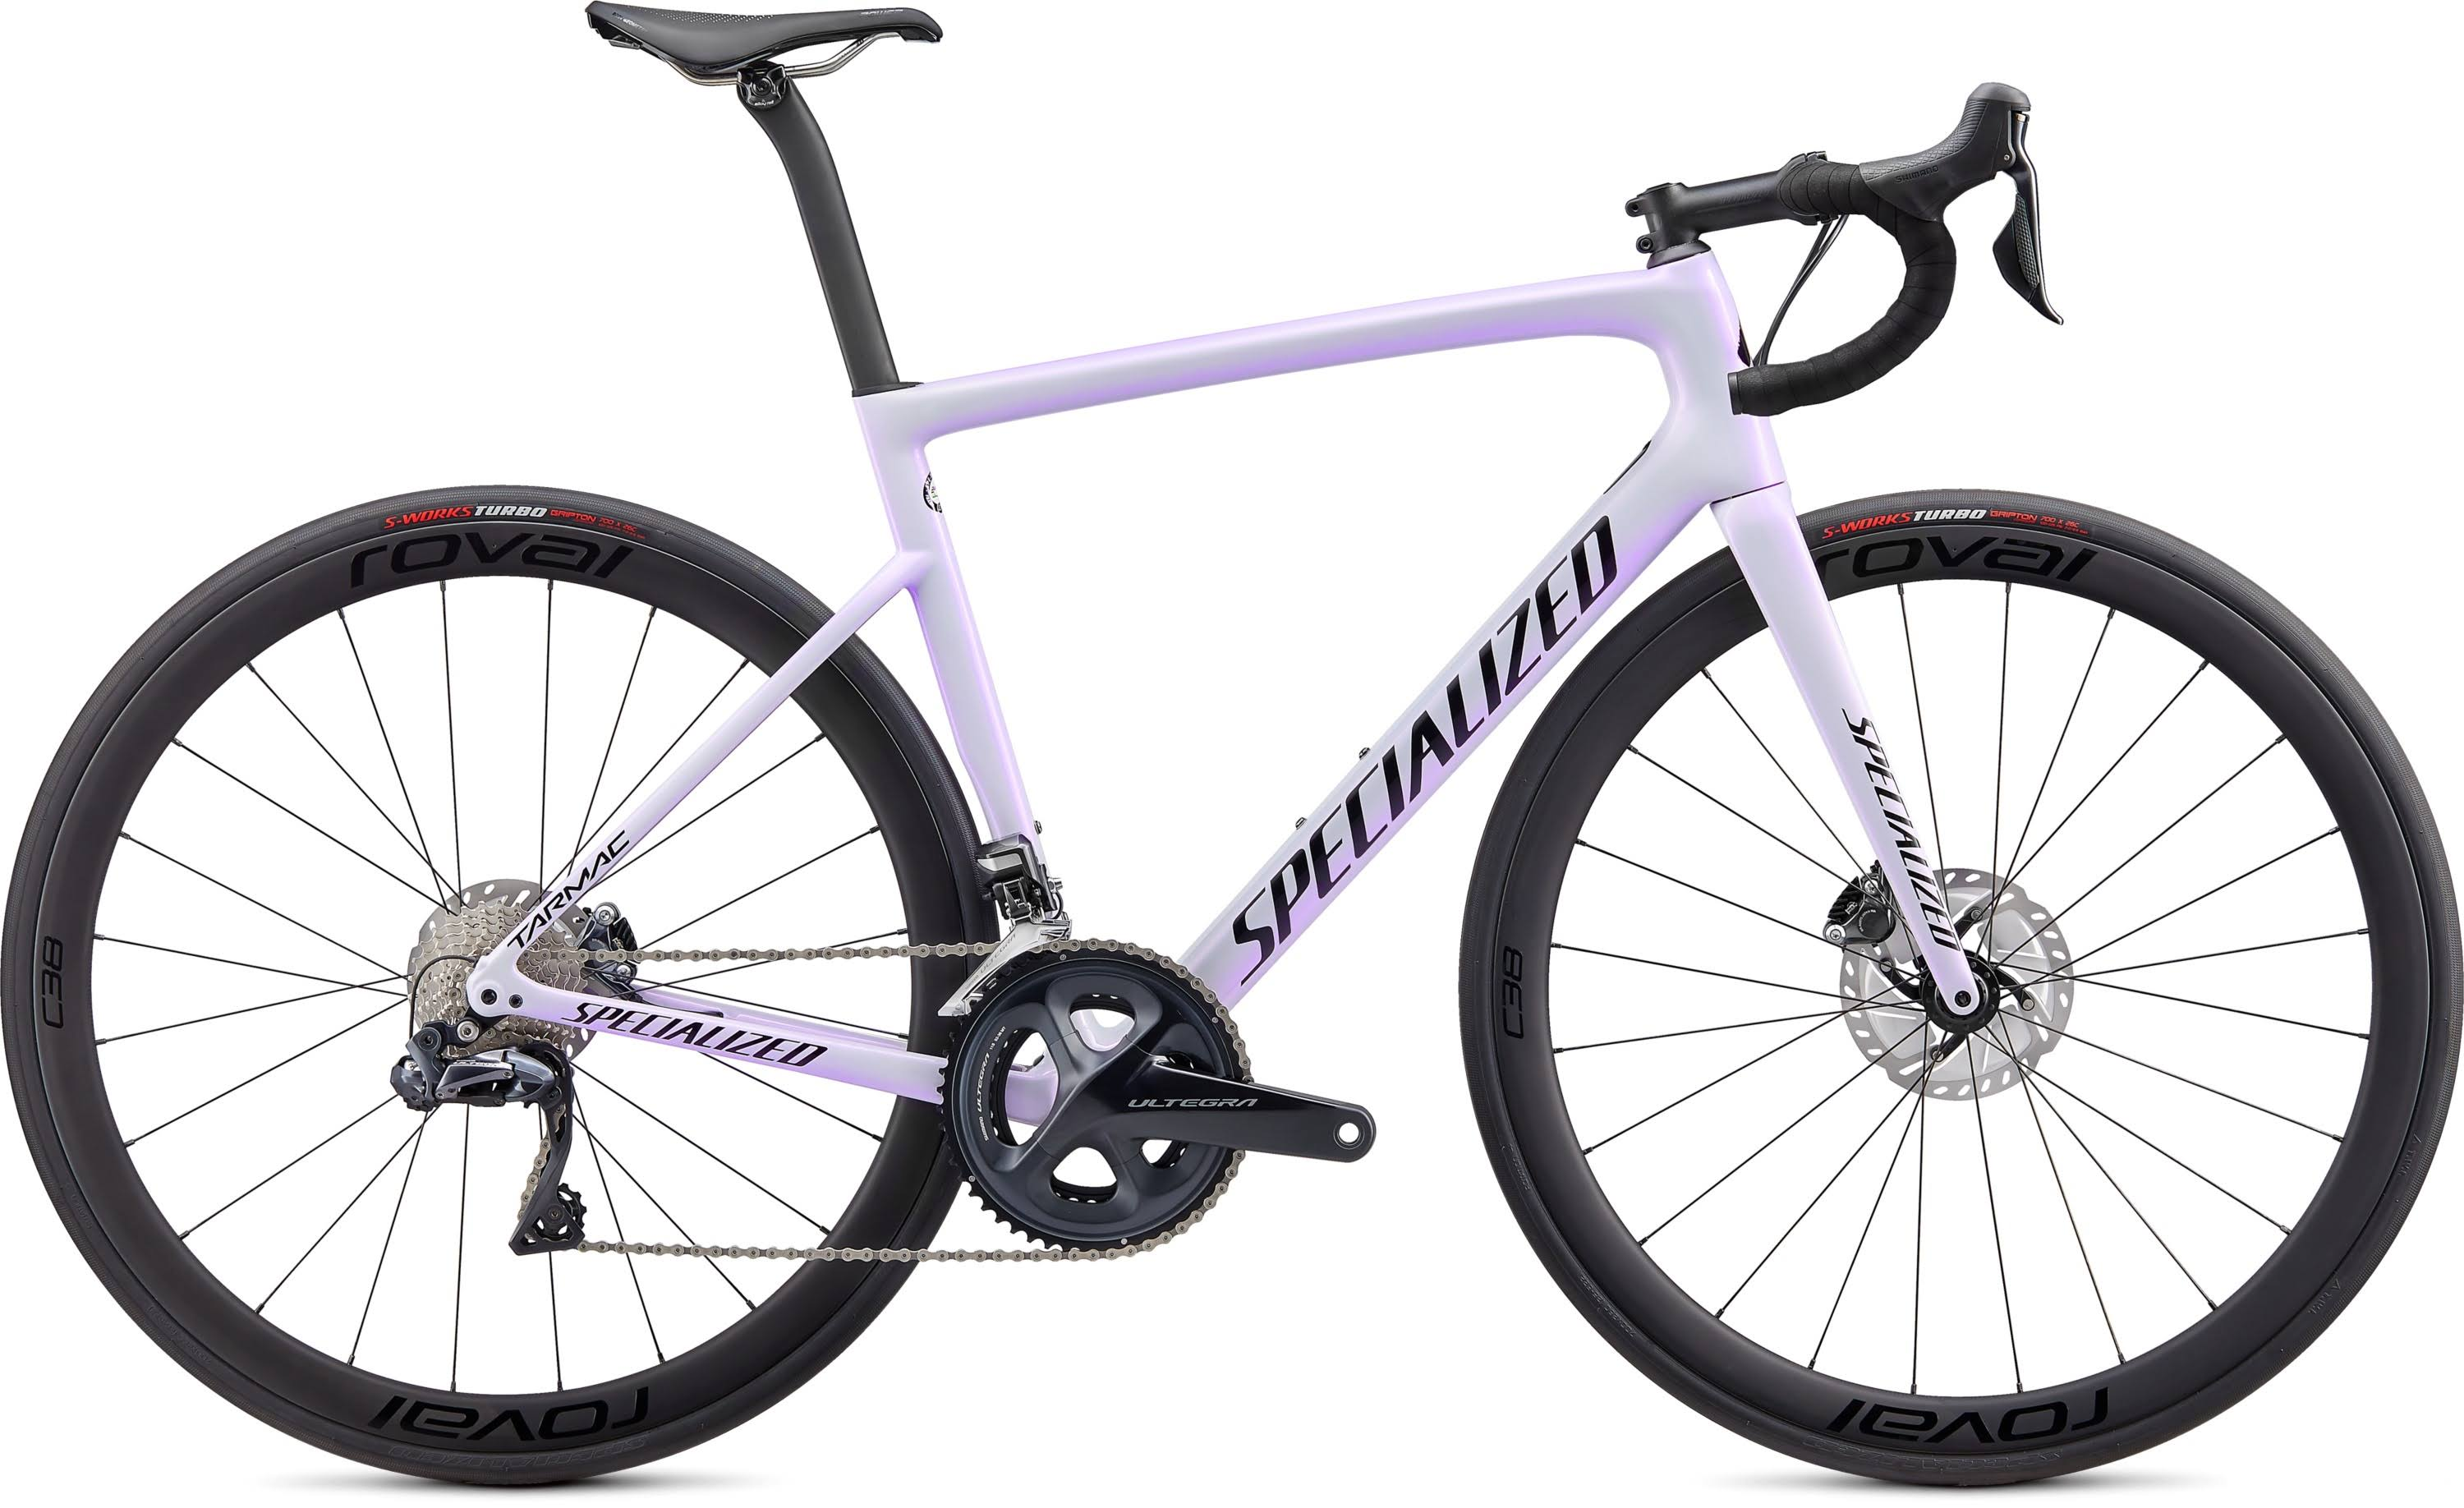 Specialized Tarmac SL6 Expert Disc Road Bike